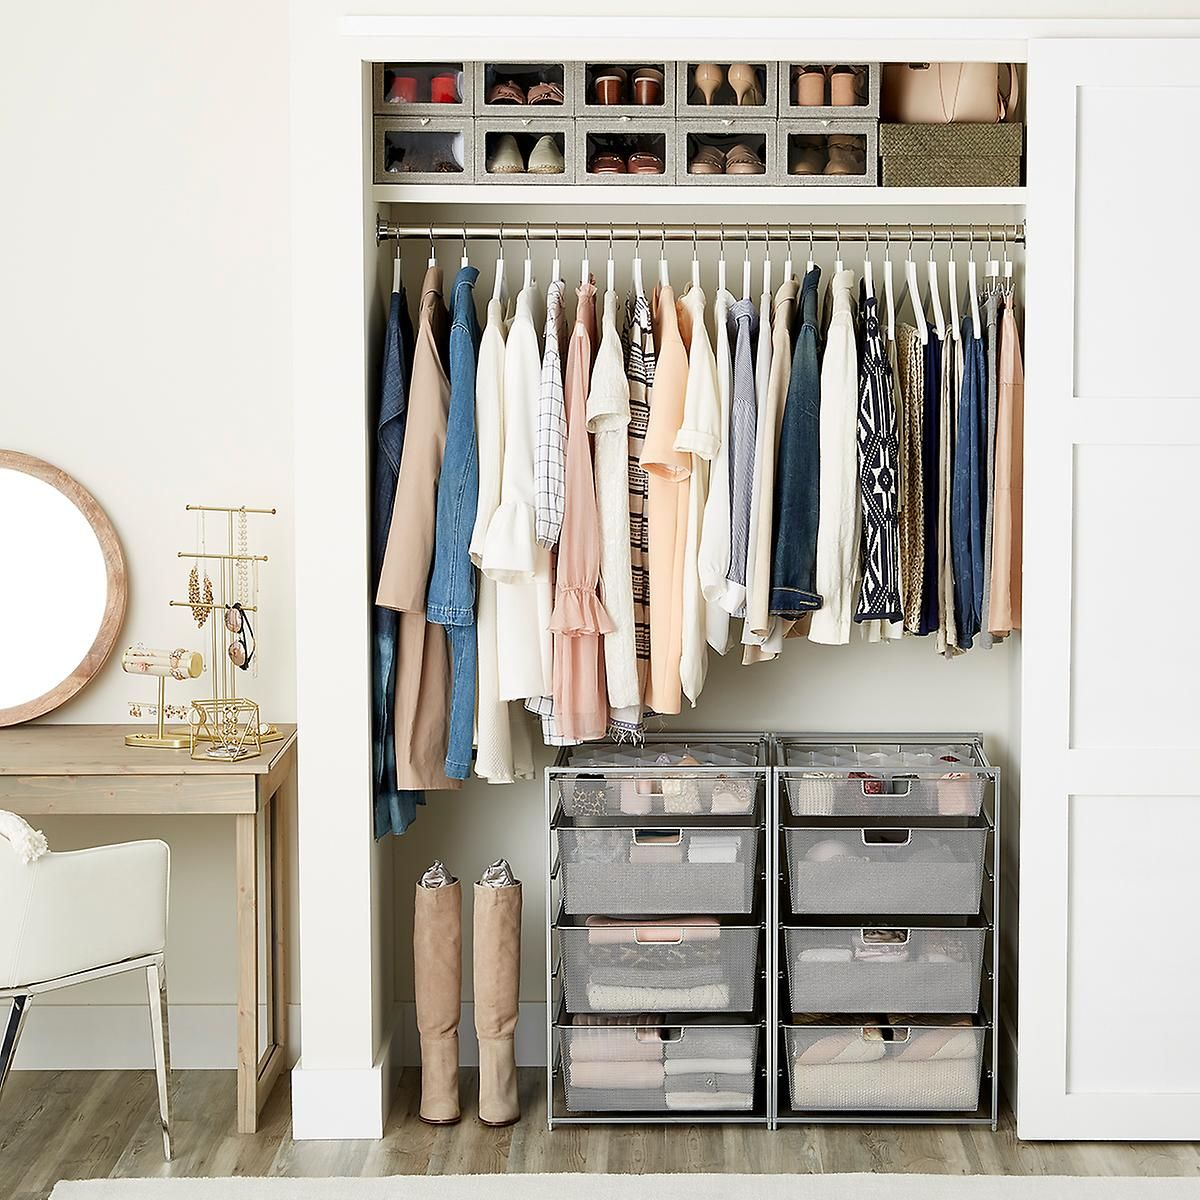 20 Small Apartment Closet Ideas that Save Space with Innovative Design